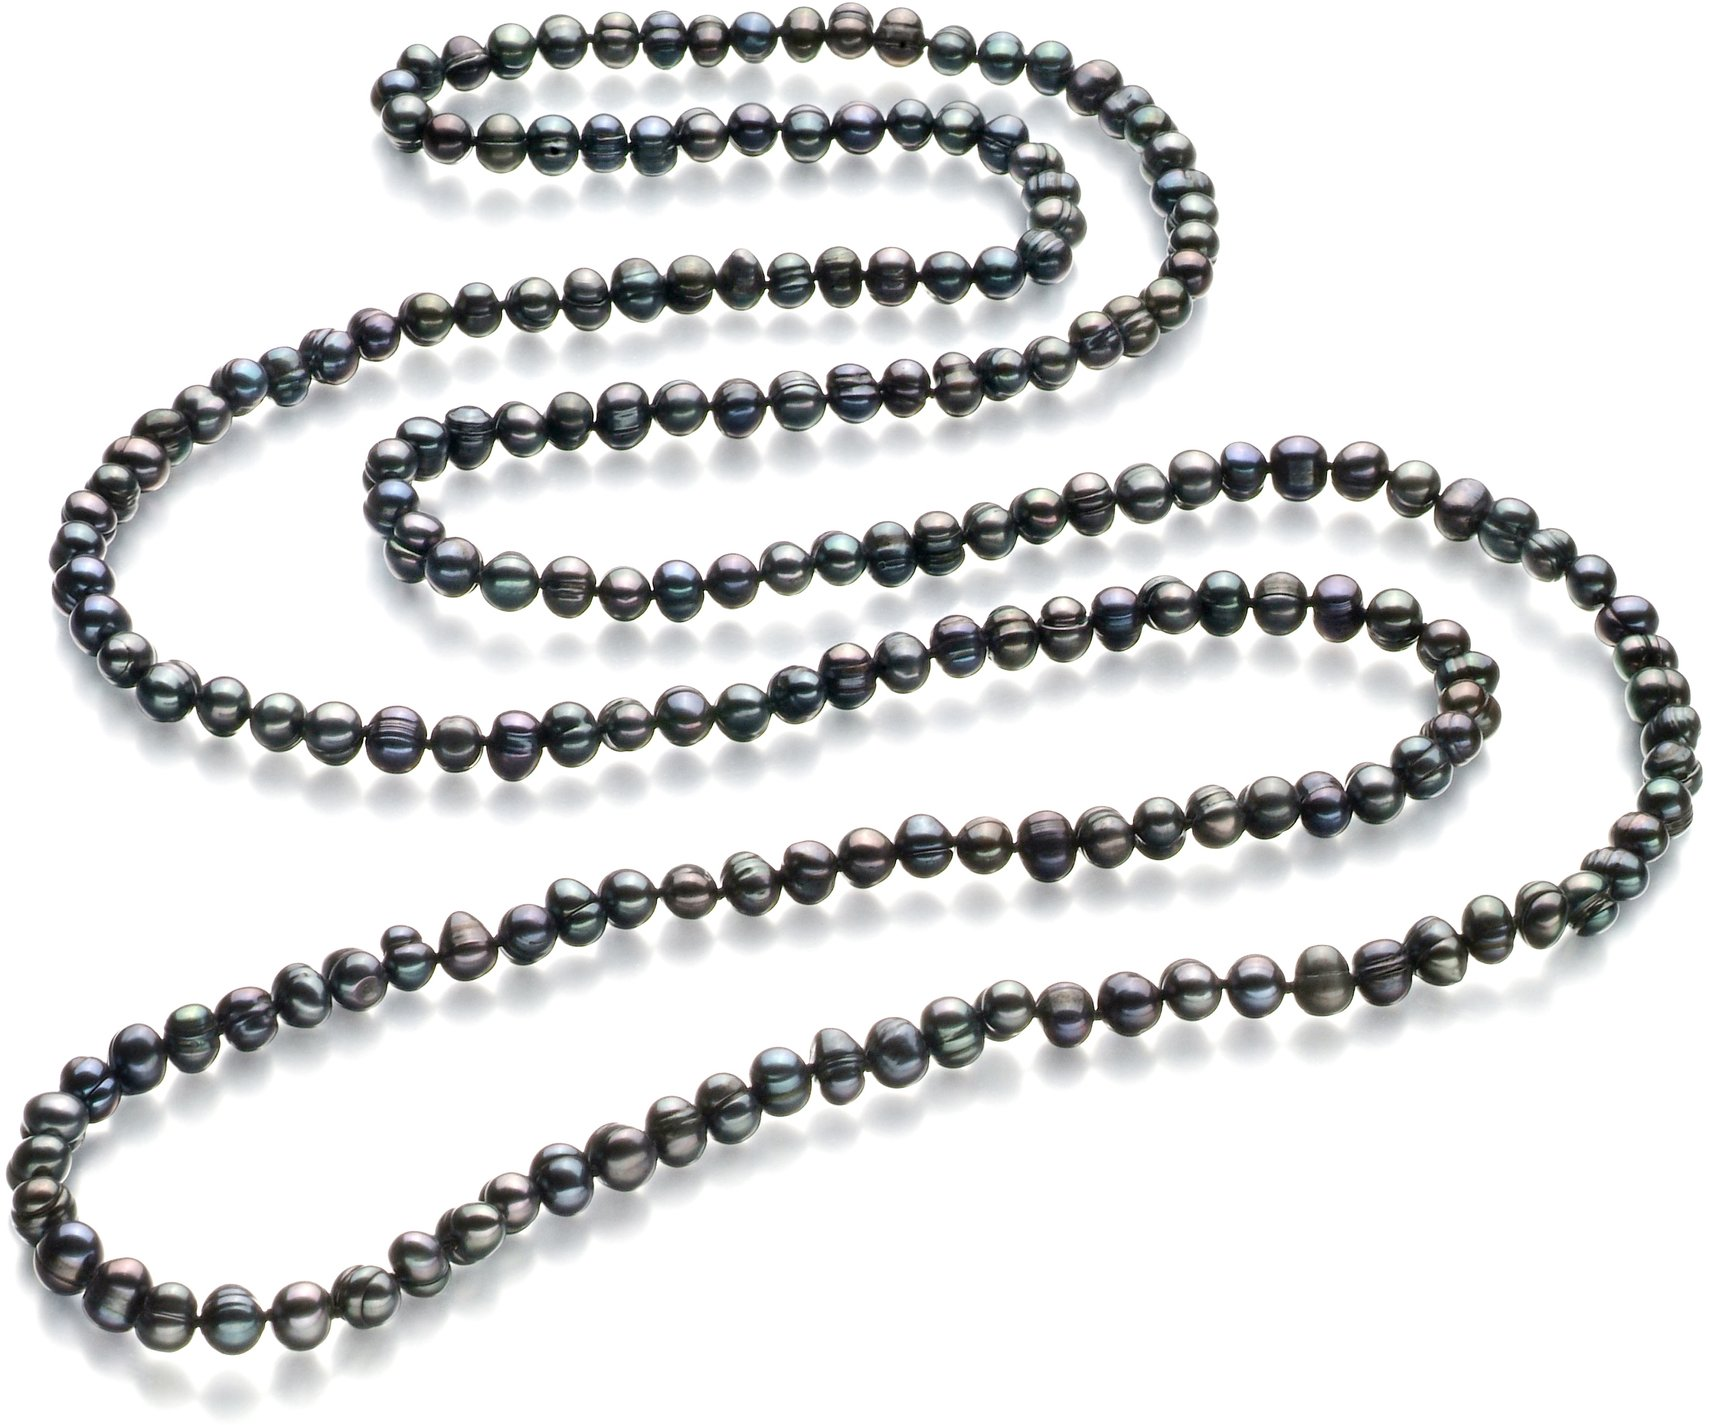 Betty Black 6-7mm A Quality Freshwater Cultured Pearl Necklace-51 in Rope length